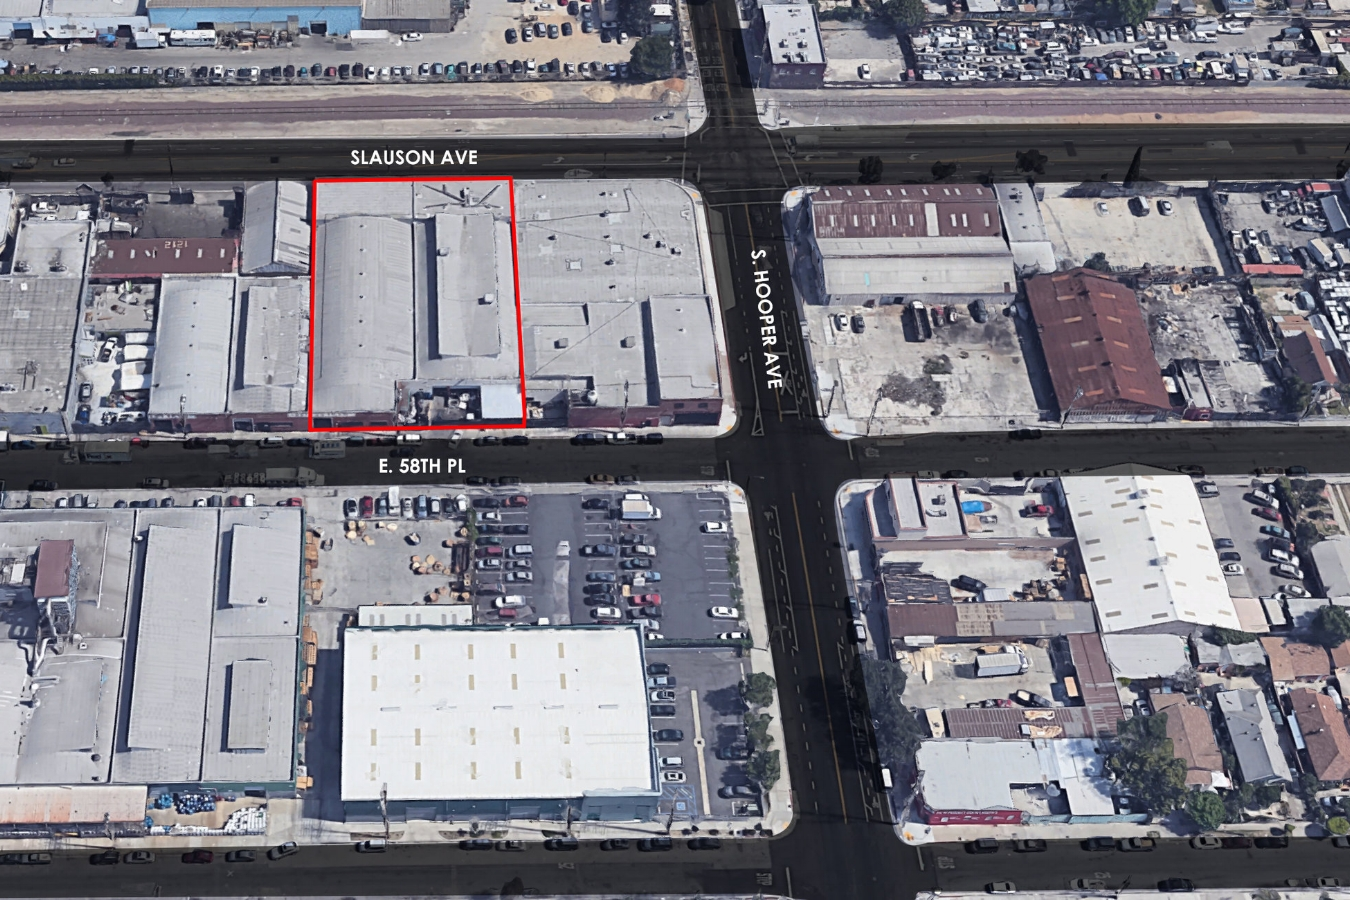 1223-1237 East 58TH STreet, LOS ANGELES, CA 90011 - - LEASE RATE: TBD- BUILDING: 27,600 SF1223: 13,600 SF1237: 14,000 SF- TYPE: Warehouse